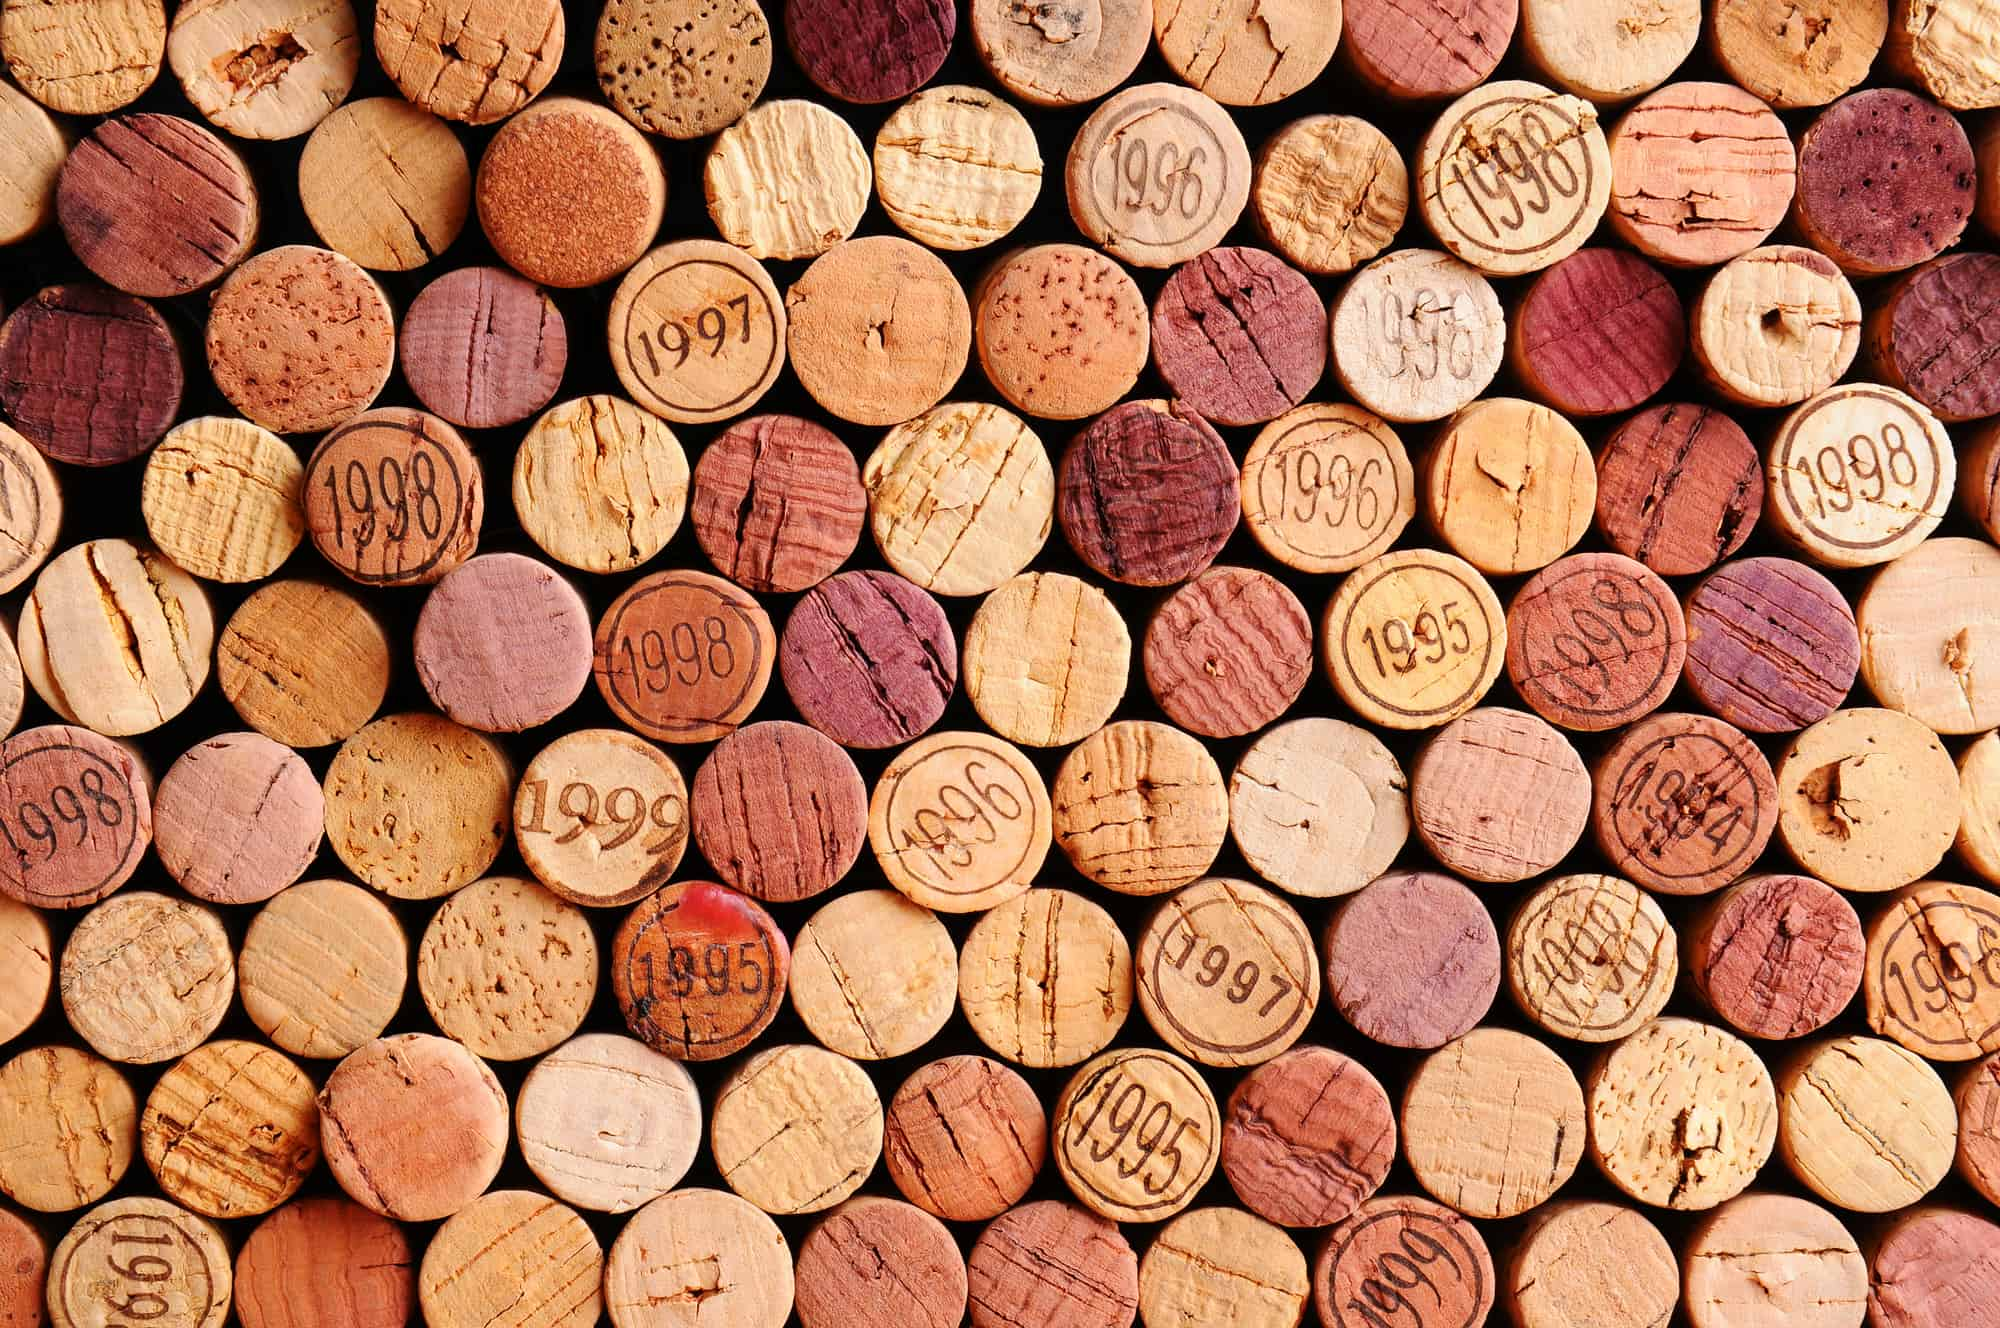 Closeup of a wall of used wine corks. A random selection of use wine corks, some with vintage years. Horizontal format that fills the frame